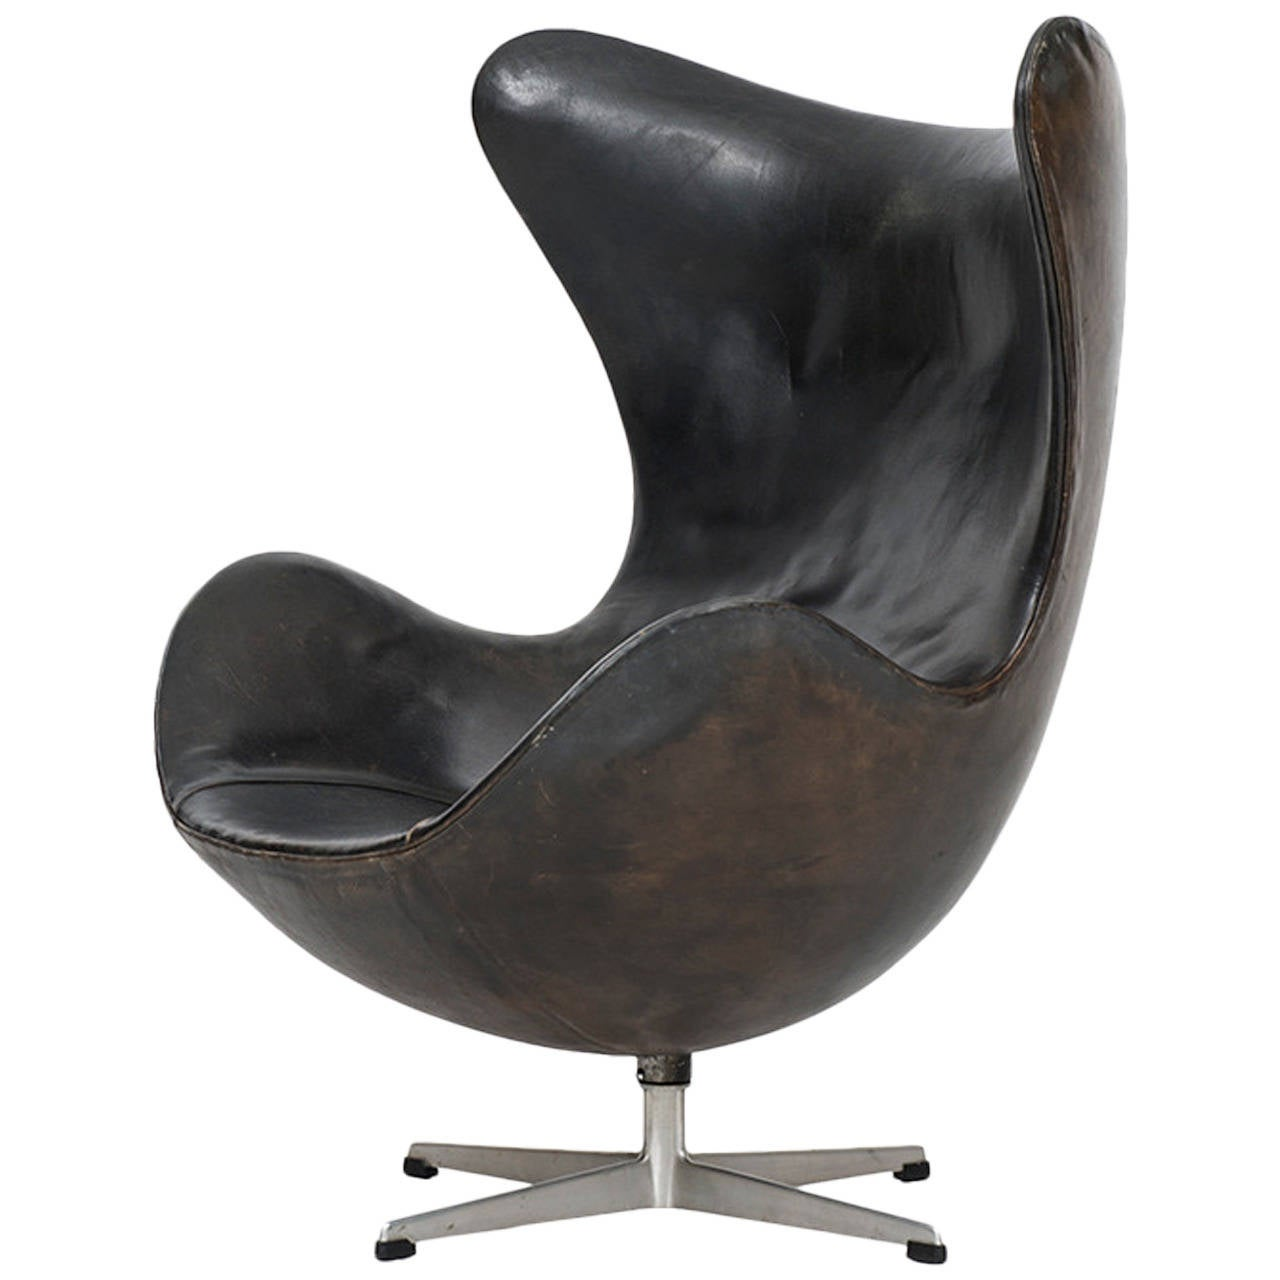 Arne jacobsen early egg chair in original black leather by for Egg chair jacobsen